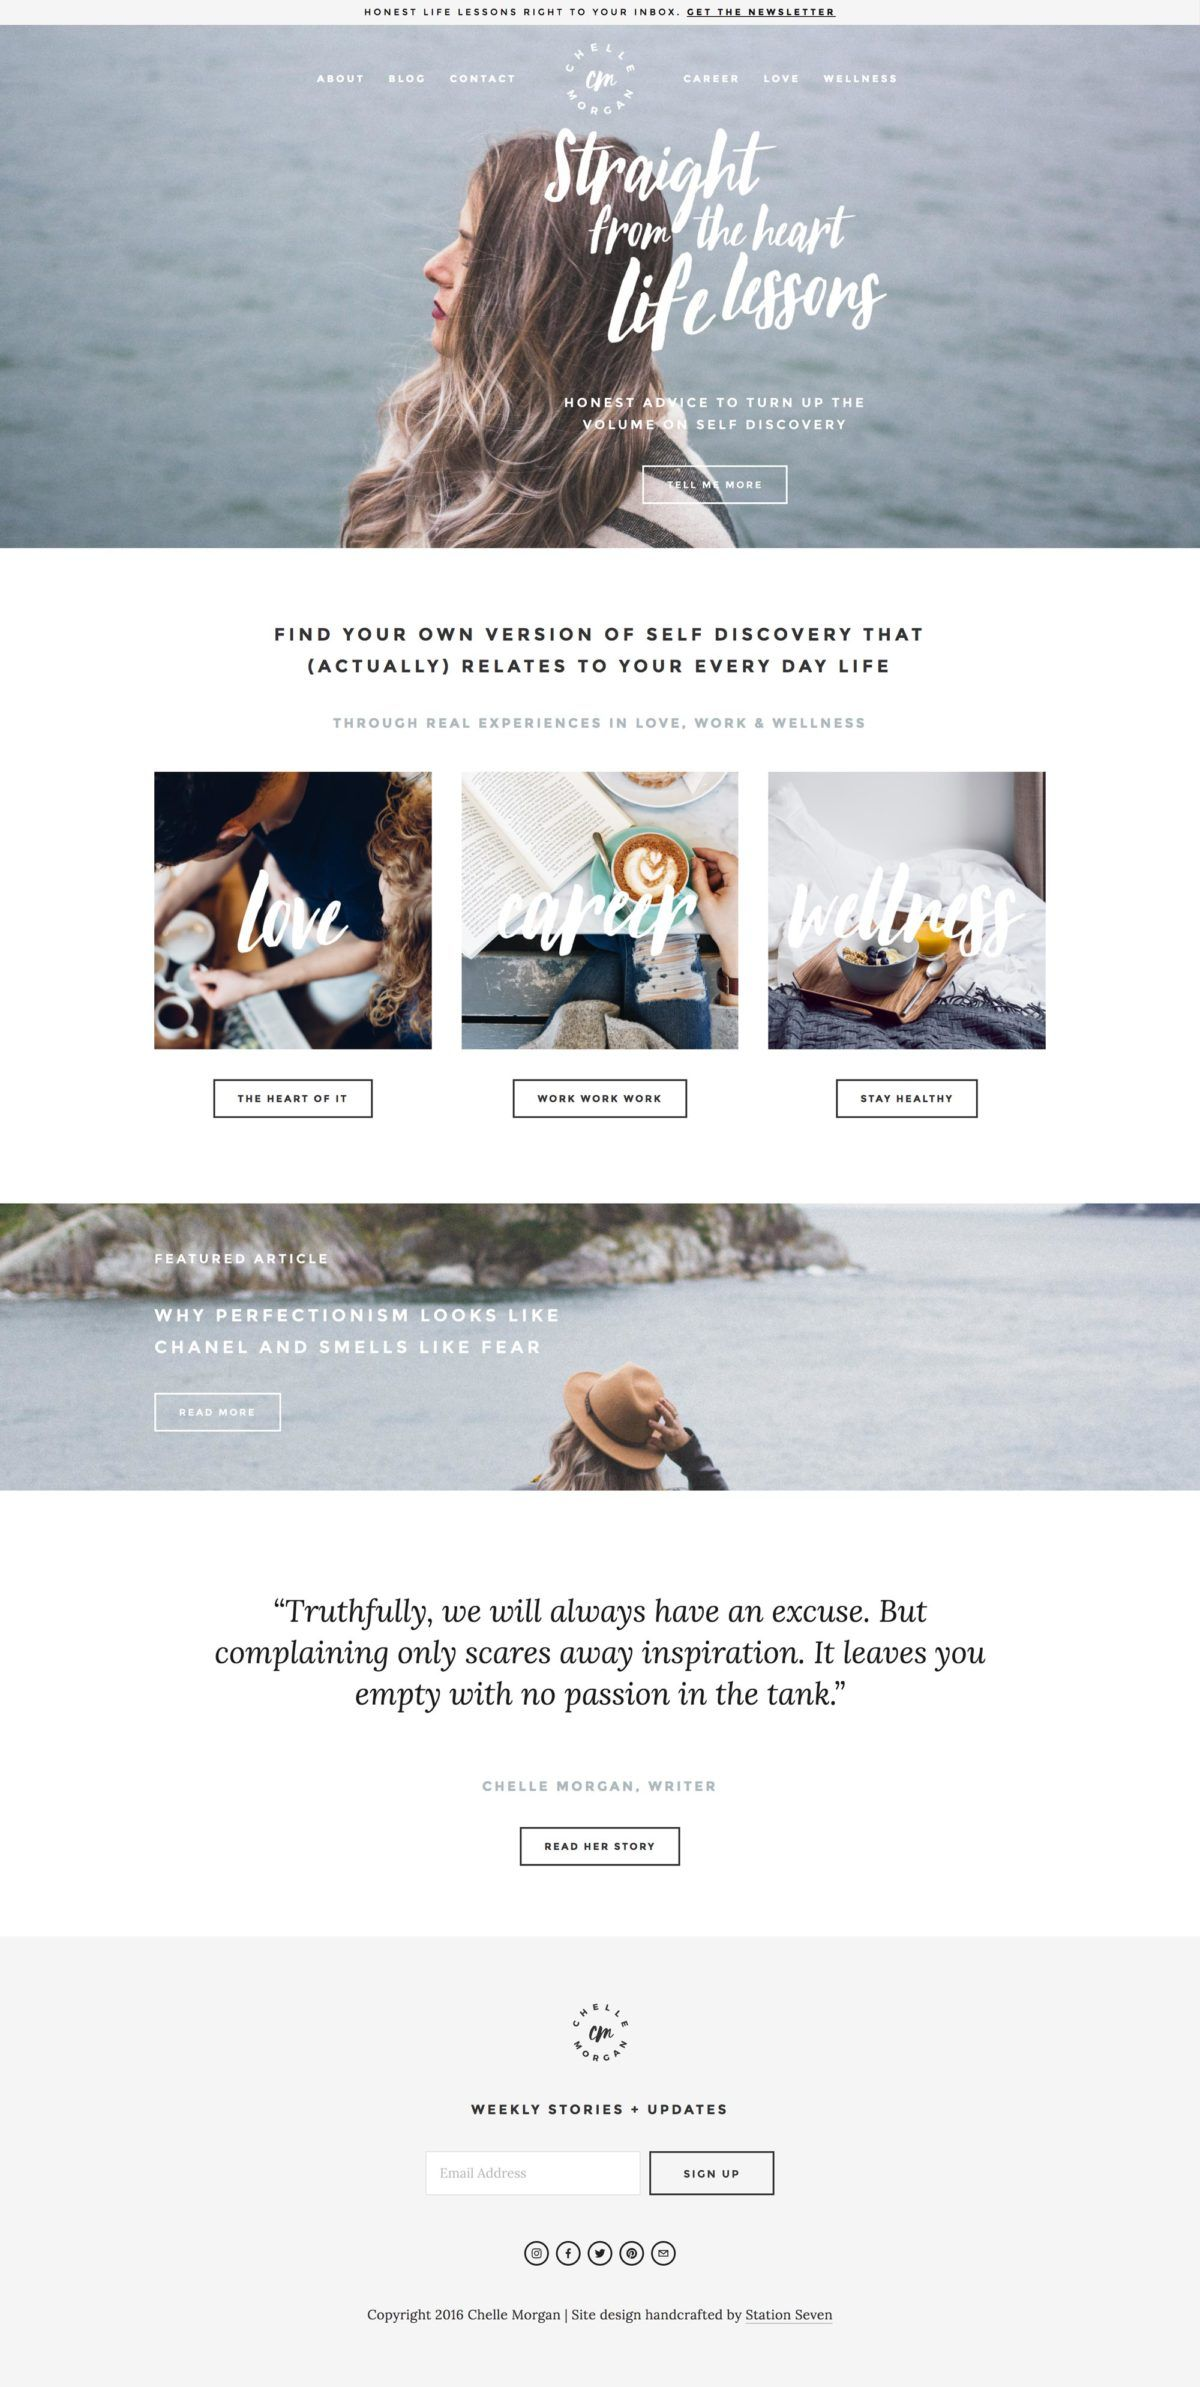 Willow Squarespace Kit — Station Seven: Squarespace Templates, WordPress Themes, and Free Resources for Creative Entrepreneurs